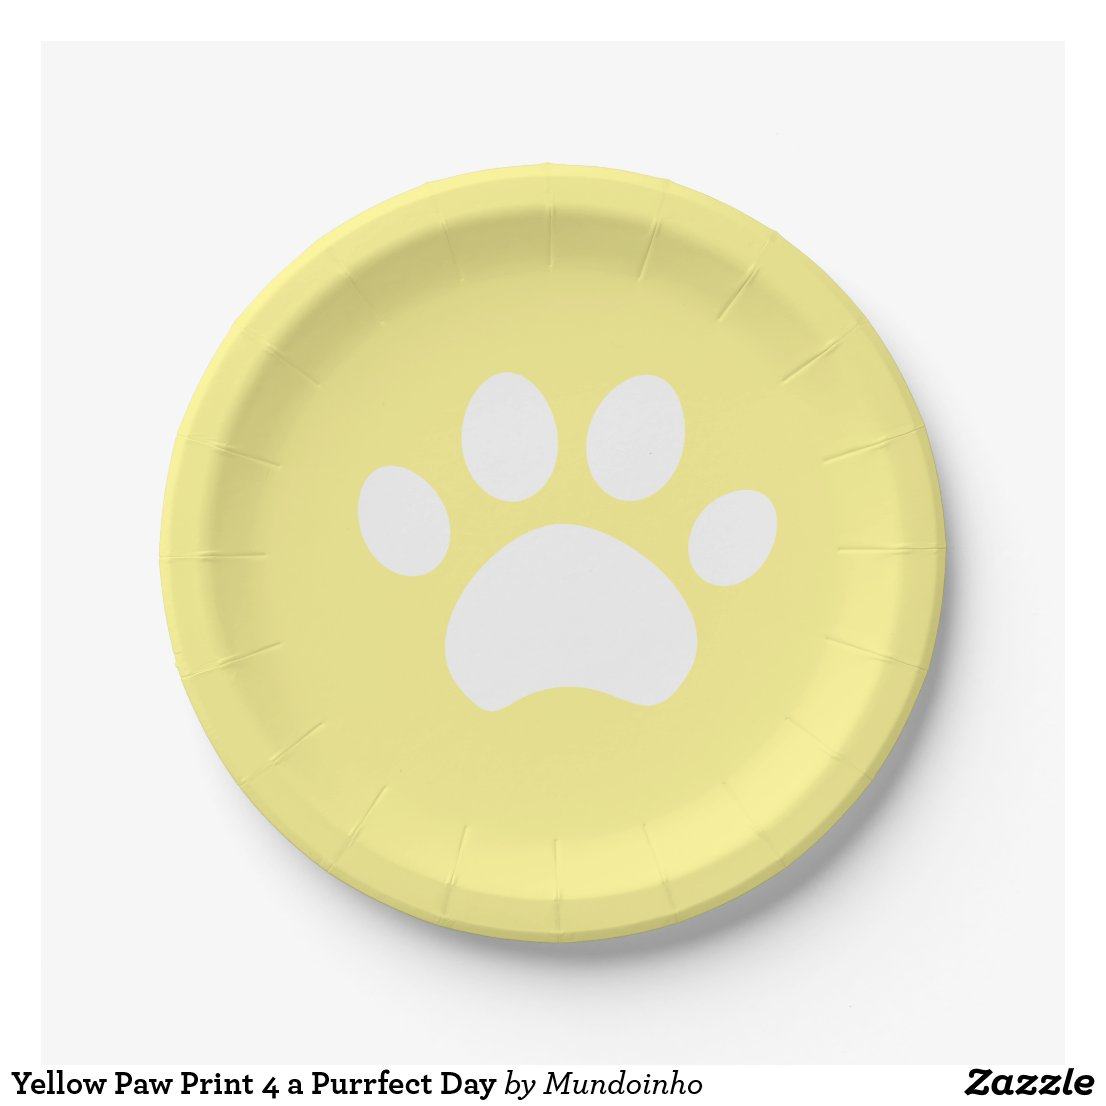 Yellow Paw Print 4 a Purrfect Day Paper Plate  sc 1 st  Mundoinho & Decor u0026 Supplies 4 Kids Parties: Cat Paw Print Paper Plates in ...